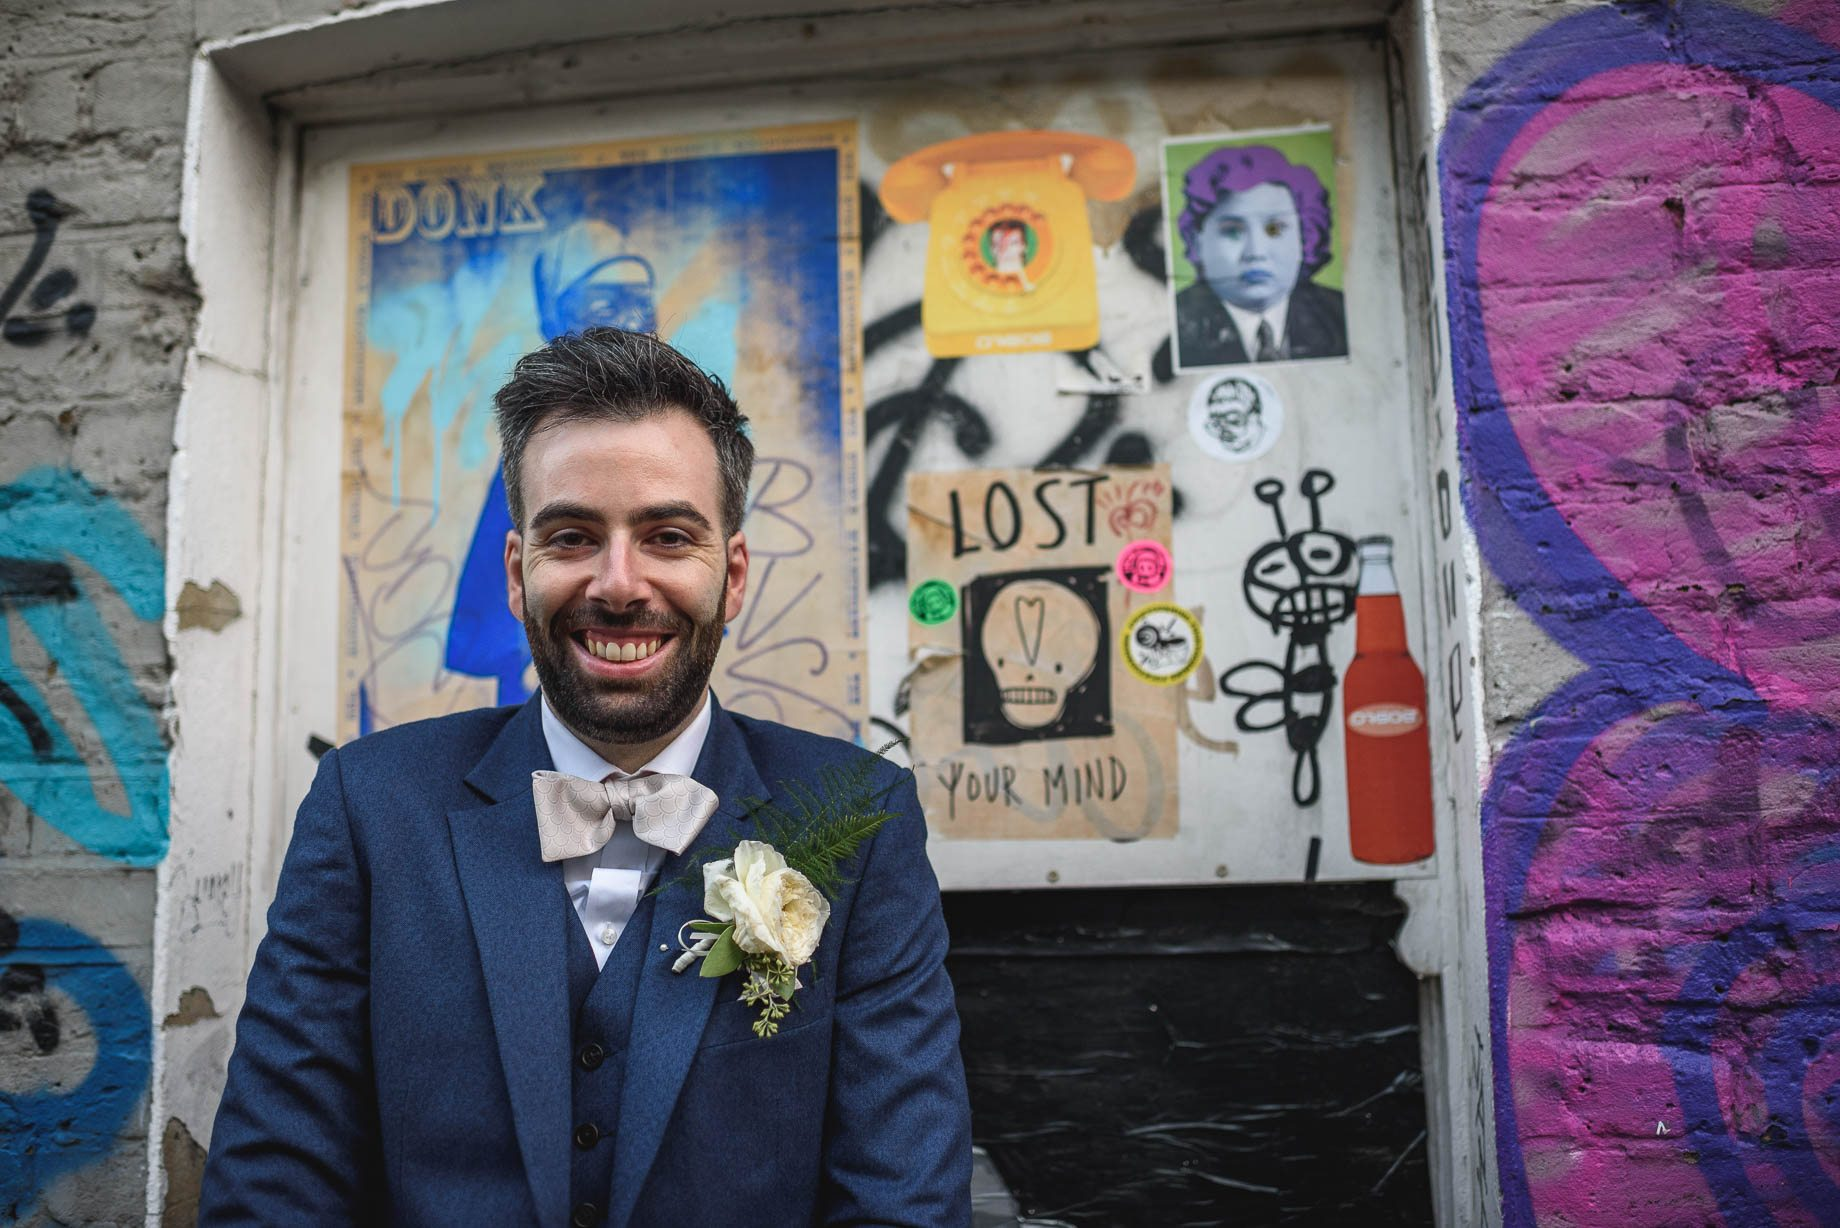 London Wedding Photography - Guy Collier Photography - LJ + Russell (139 of 155)